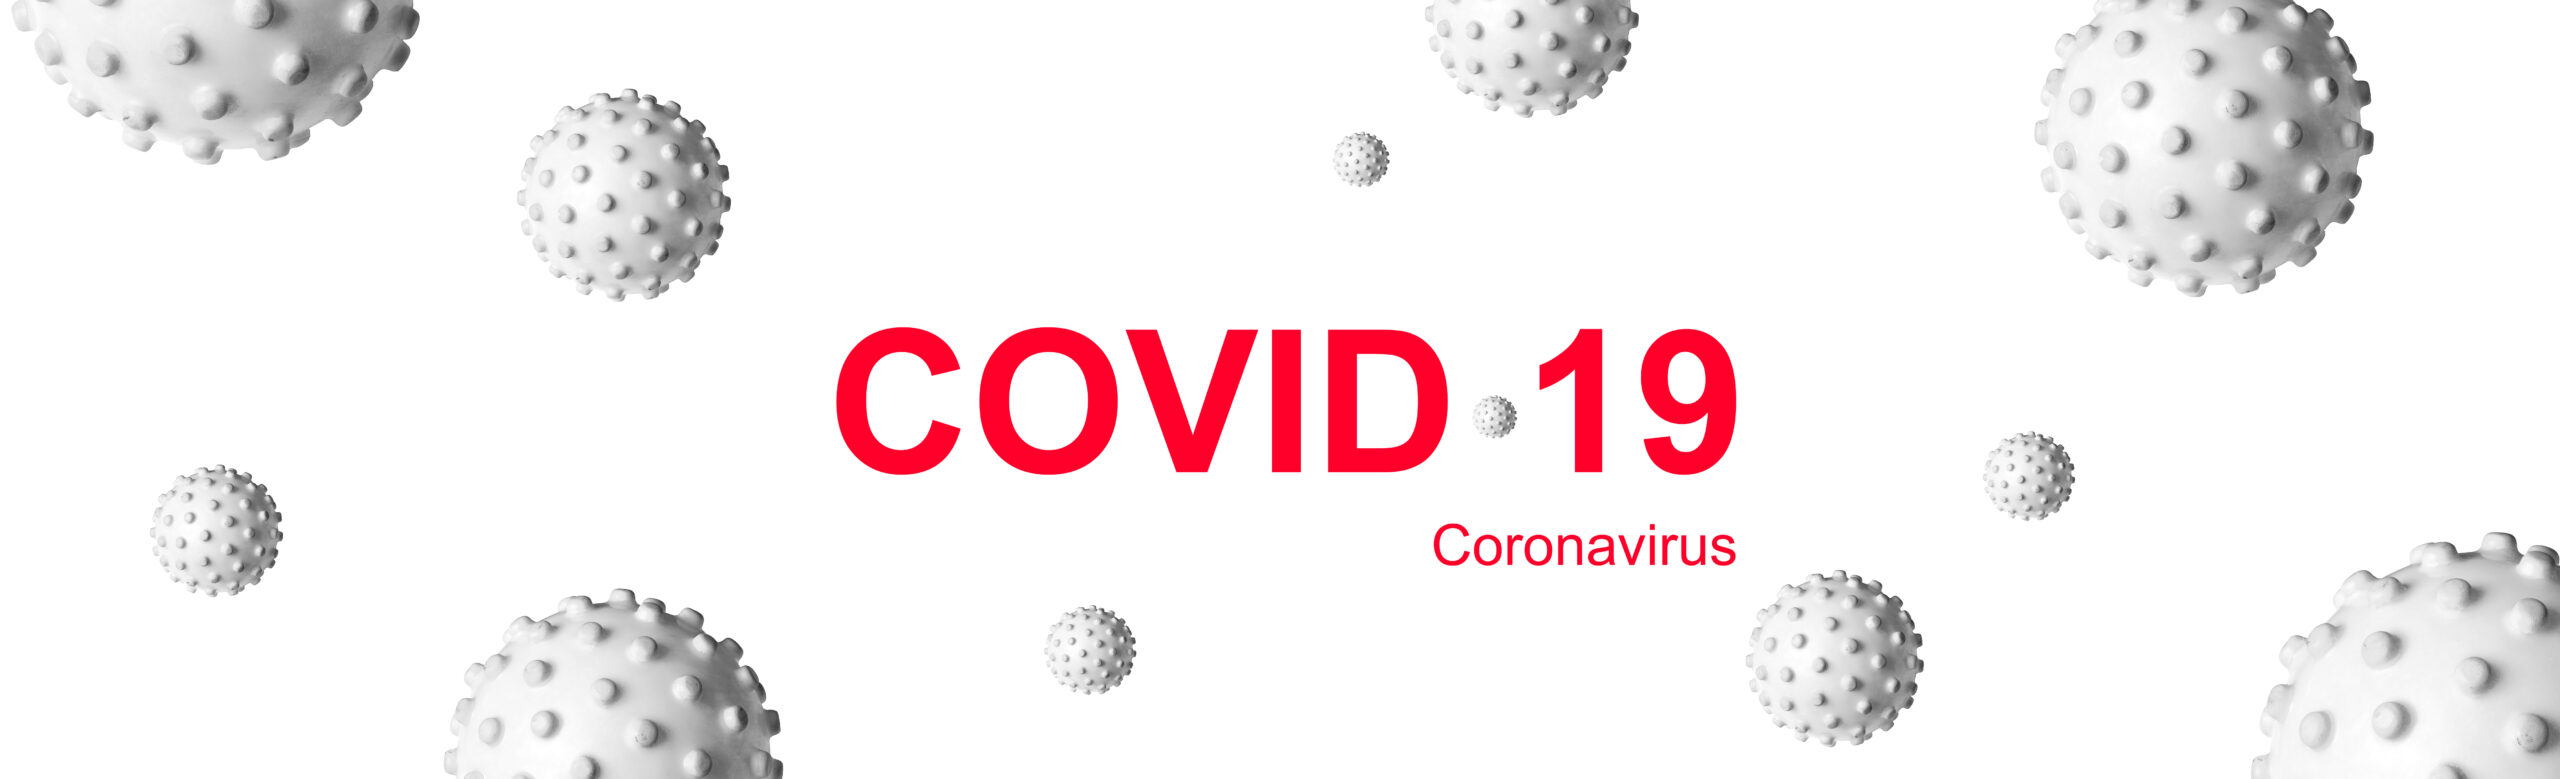 Ash Dental COVID-19 Prevention and Safety | ASH Dental Irvine